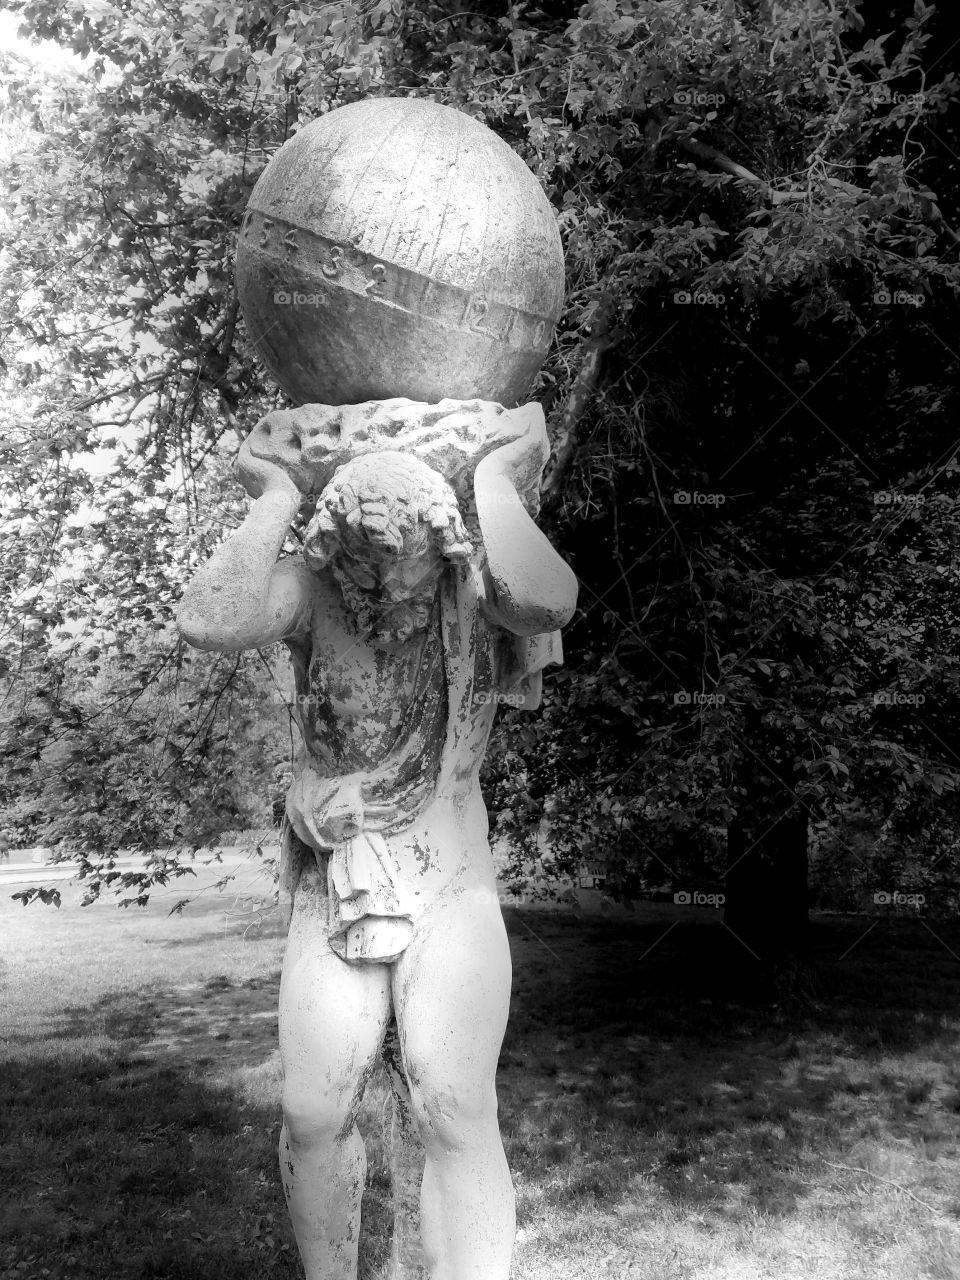 Beginning of Summer at Old Westbury Gardens on Long Island. Mix of Clouds and Sun. BNW Filter. Sculpture Captured on Android Phone - Galaxy S7. May 2017.